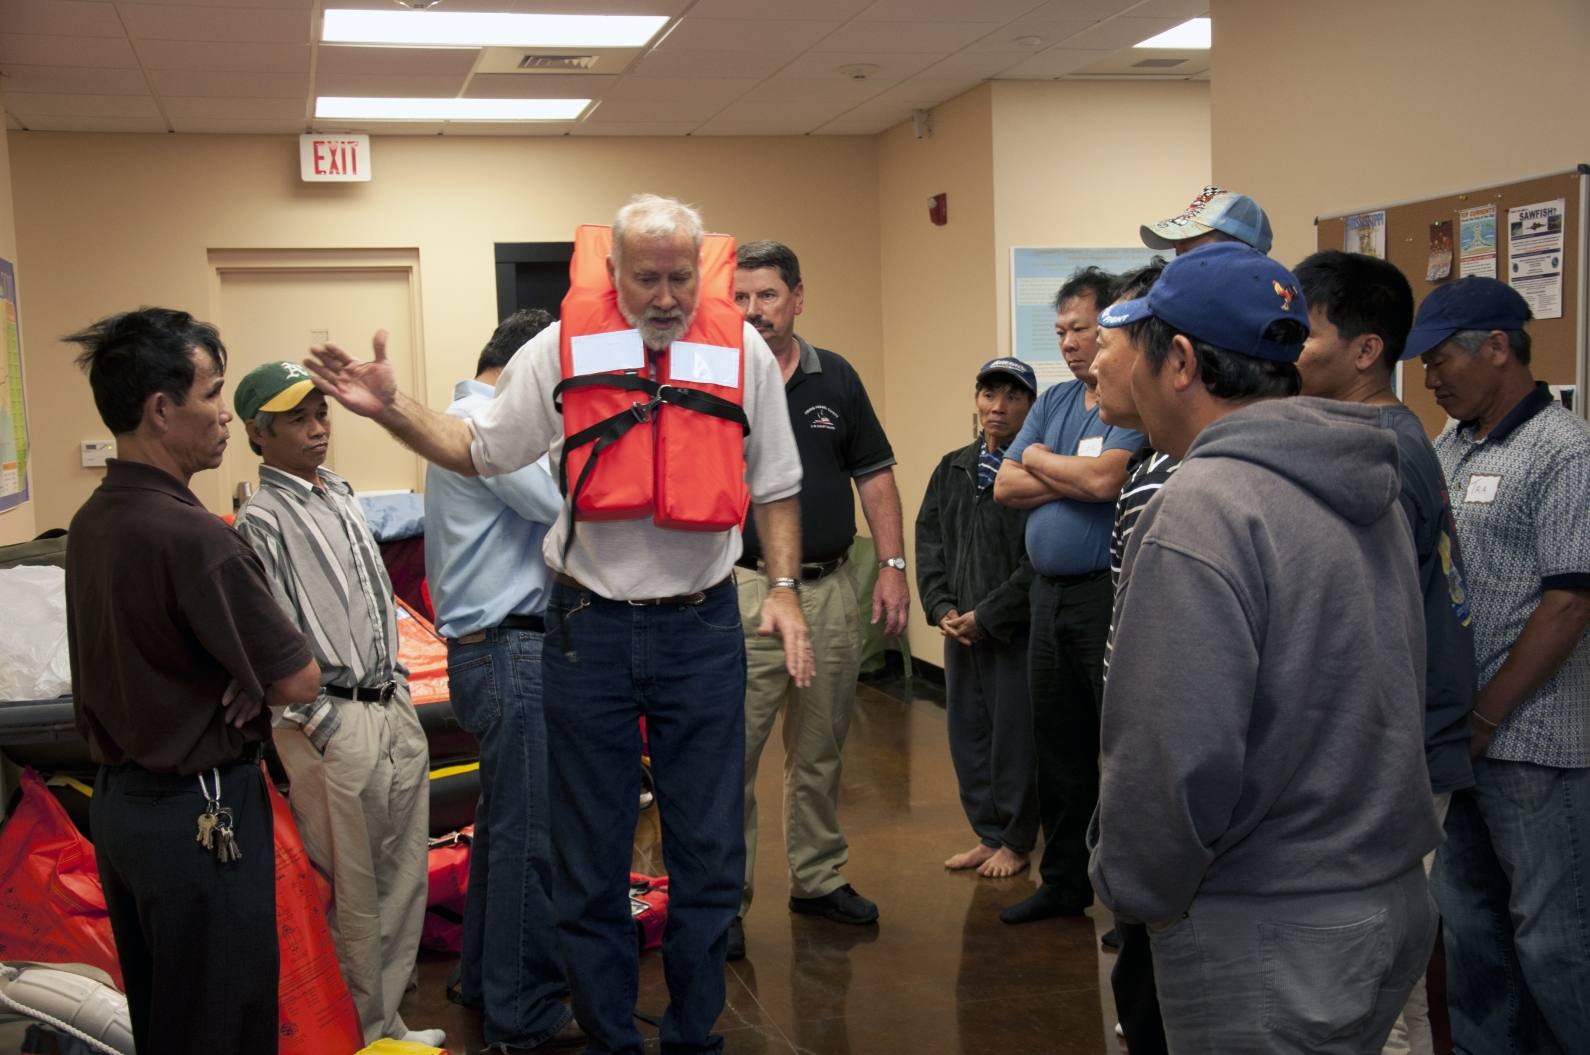 Dave helps train shrimpers to conduct safety drills aboard vessels.